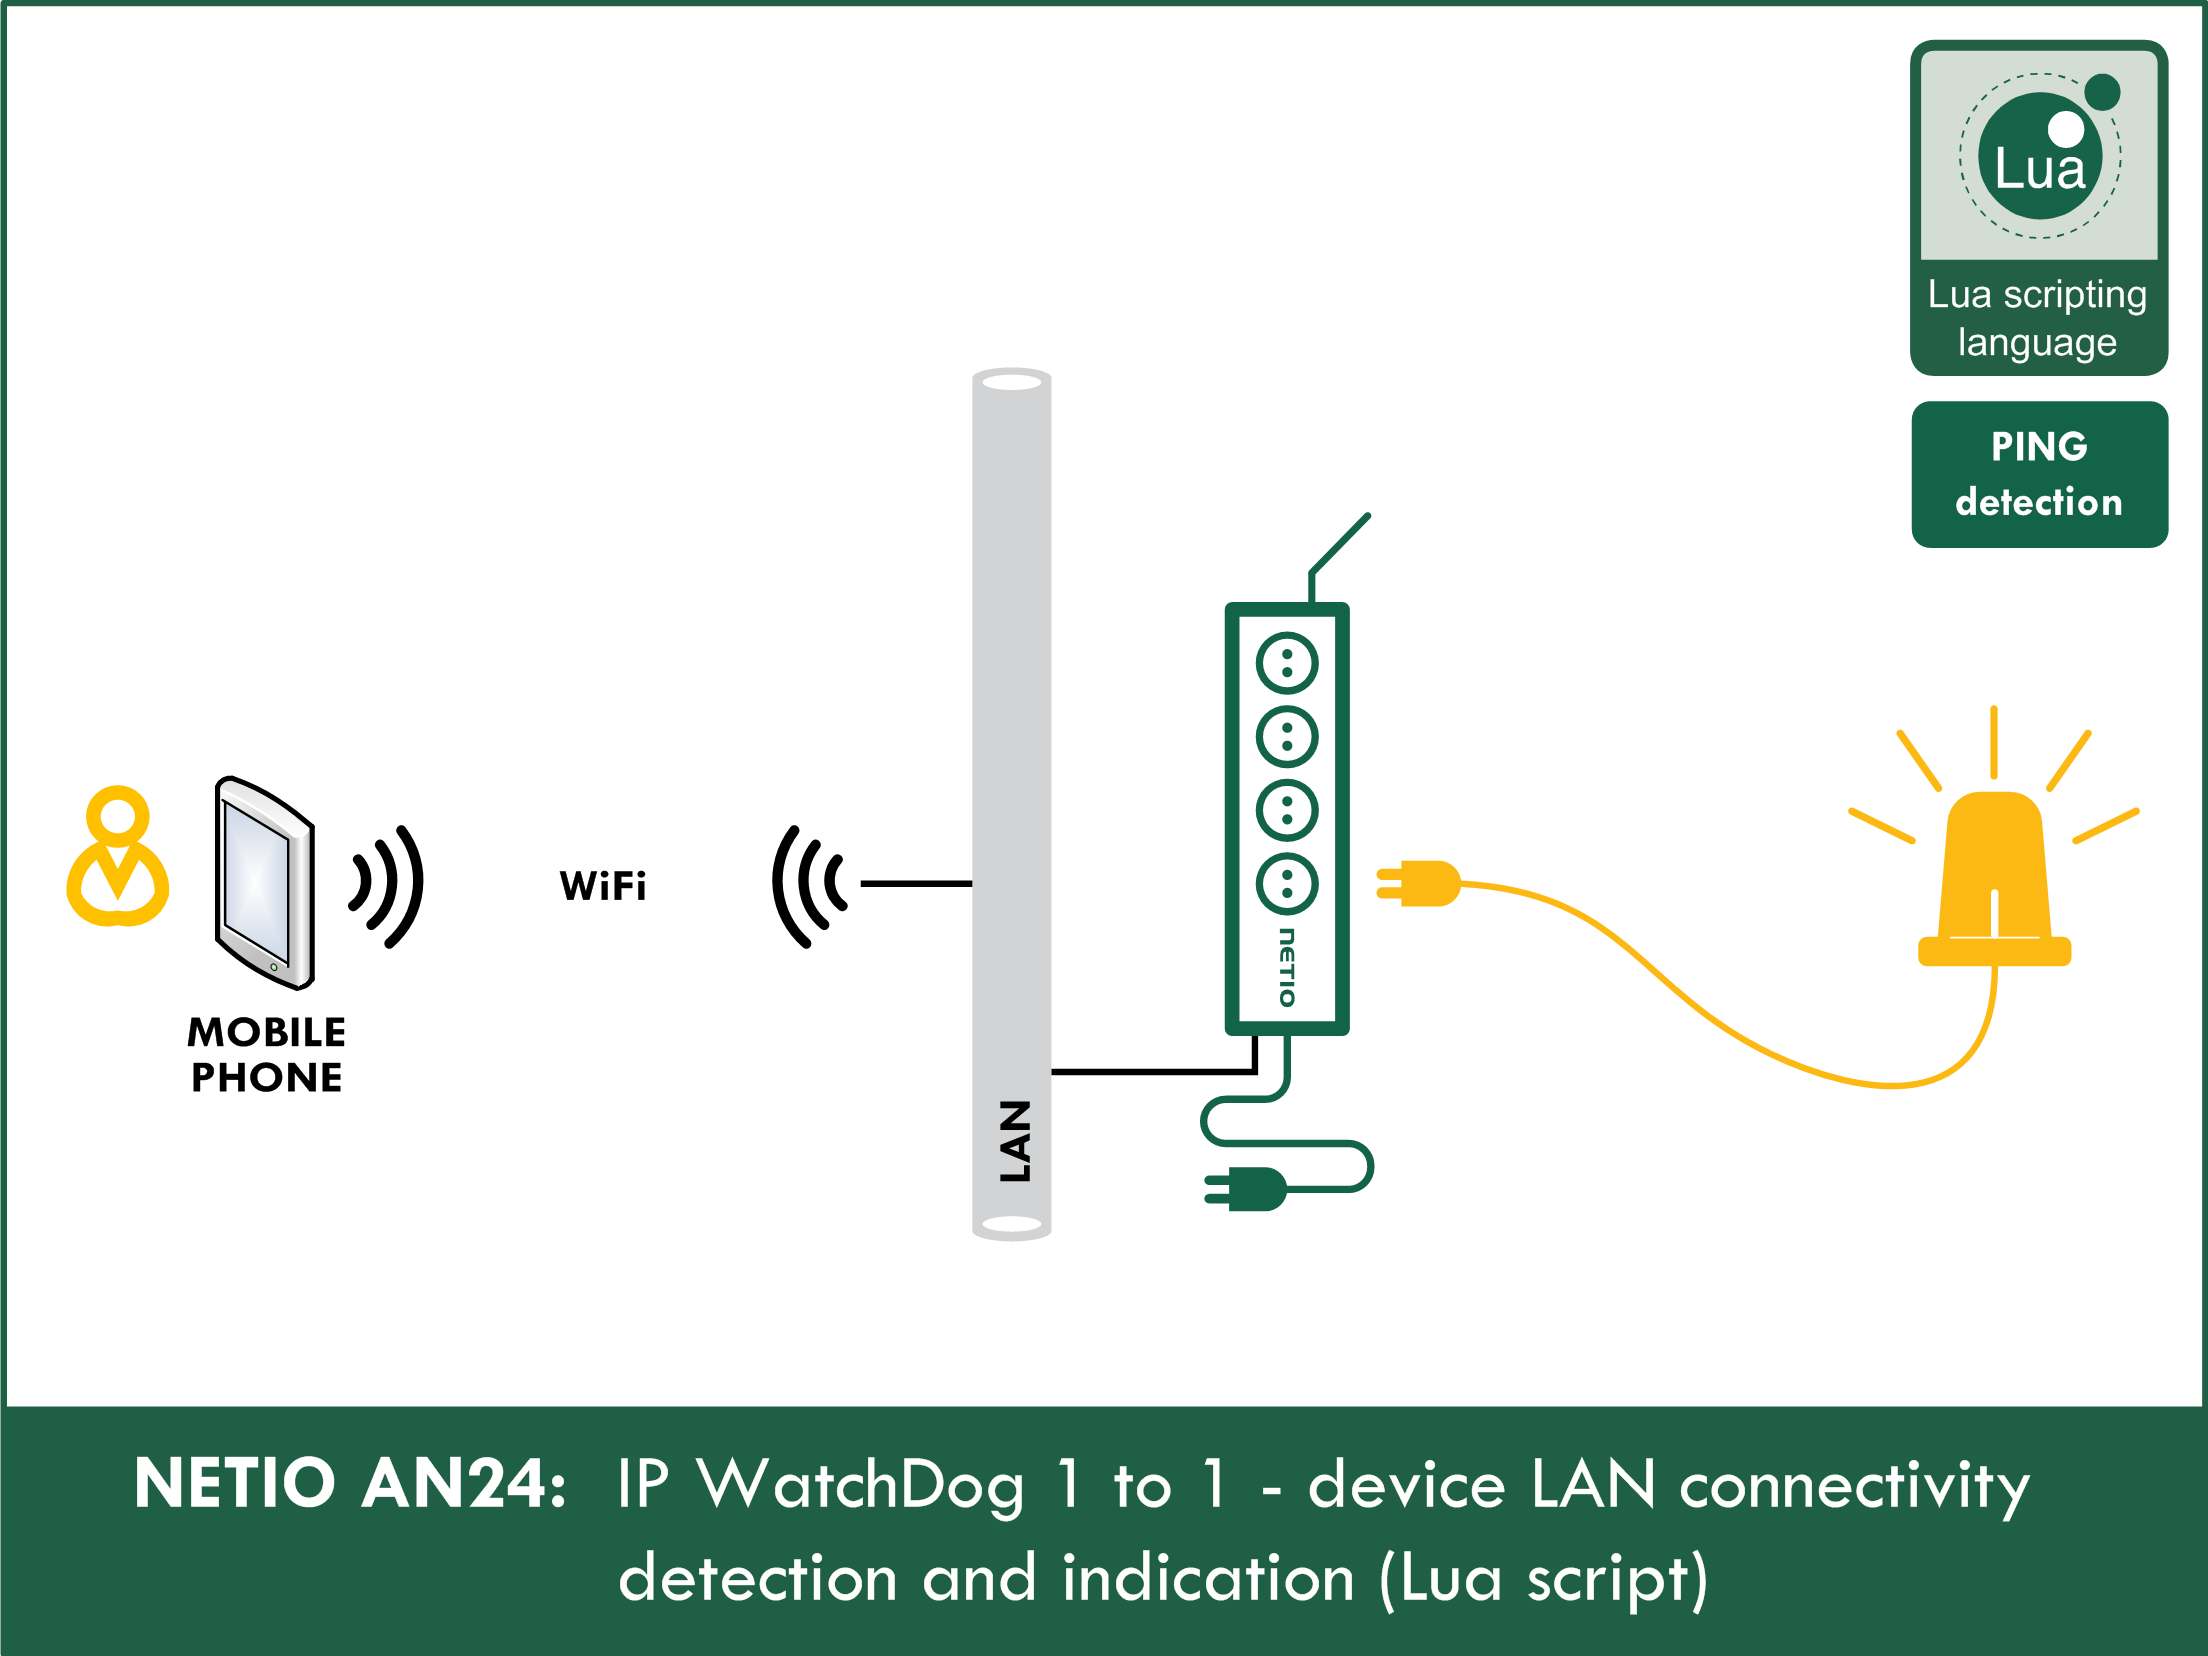 AN24 IP WatchDog 1 to 1 – Device LAN connectivity detection and indication (Lua script)